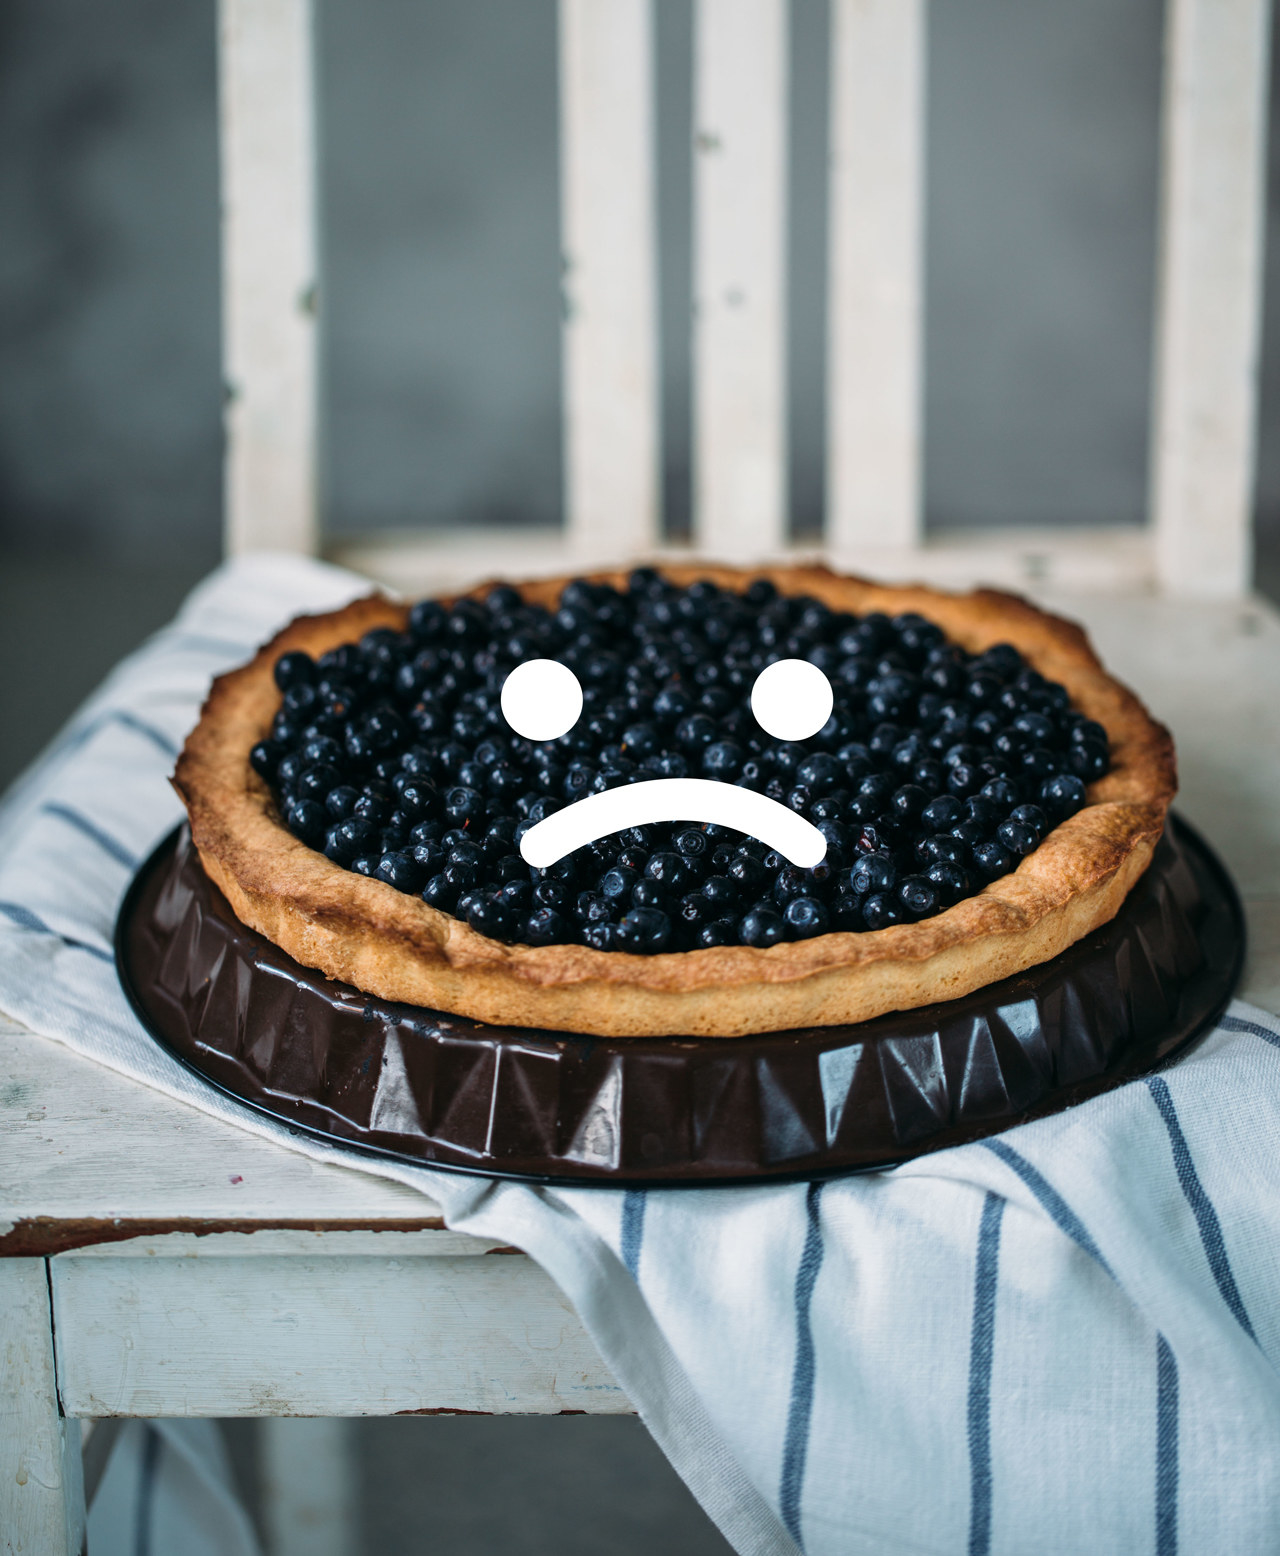 Hey, Have You Ever Heard Of Blueberry Pie Or Nah?